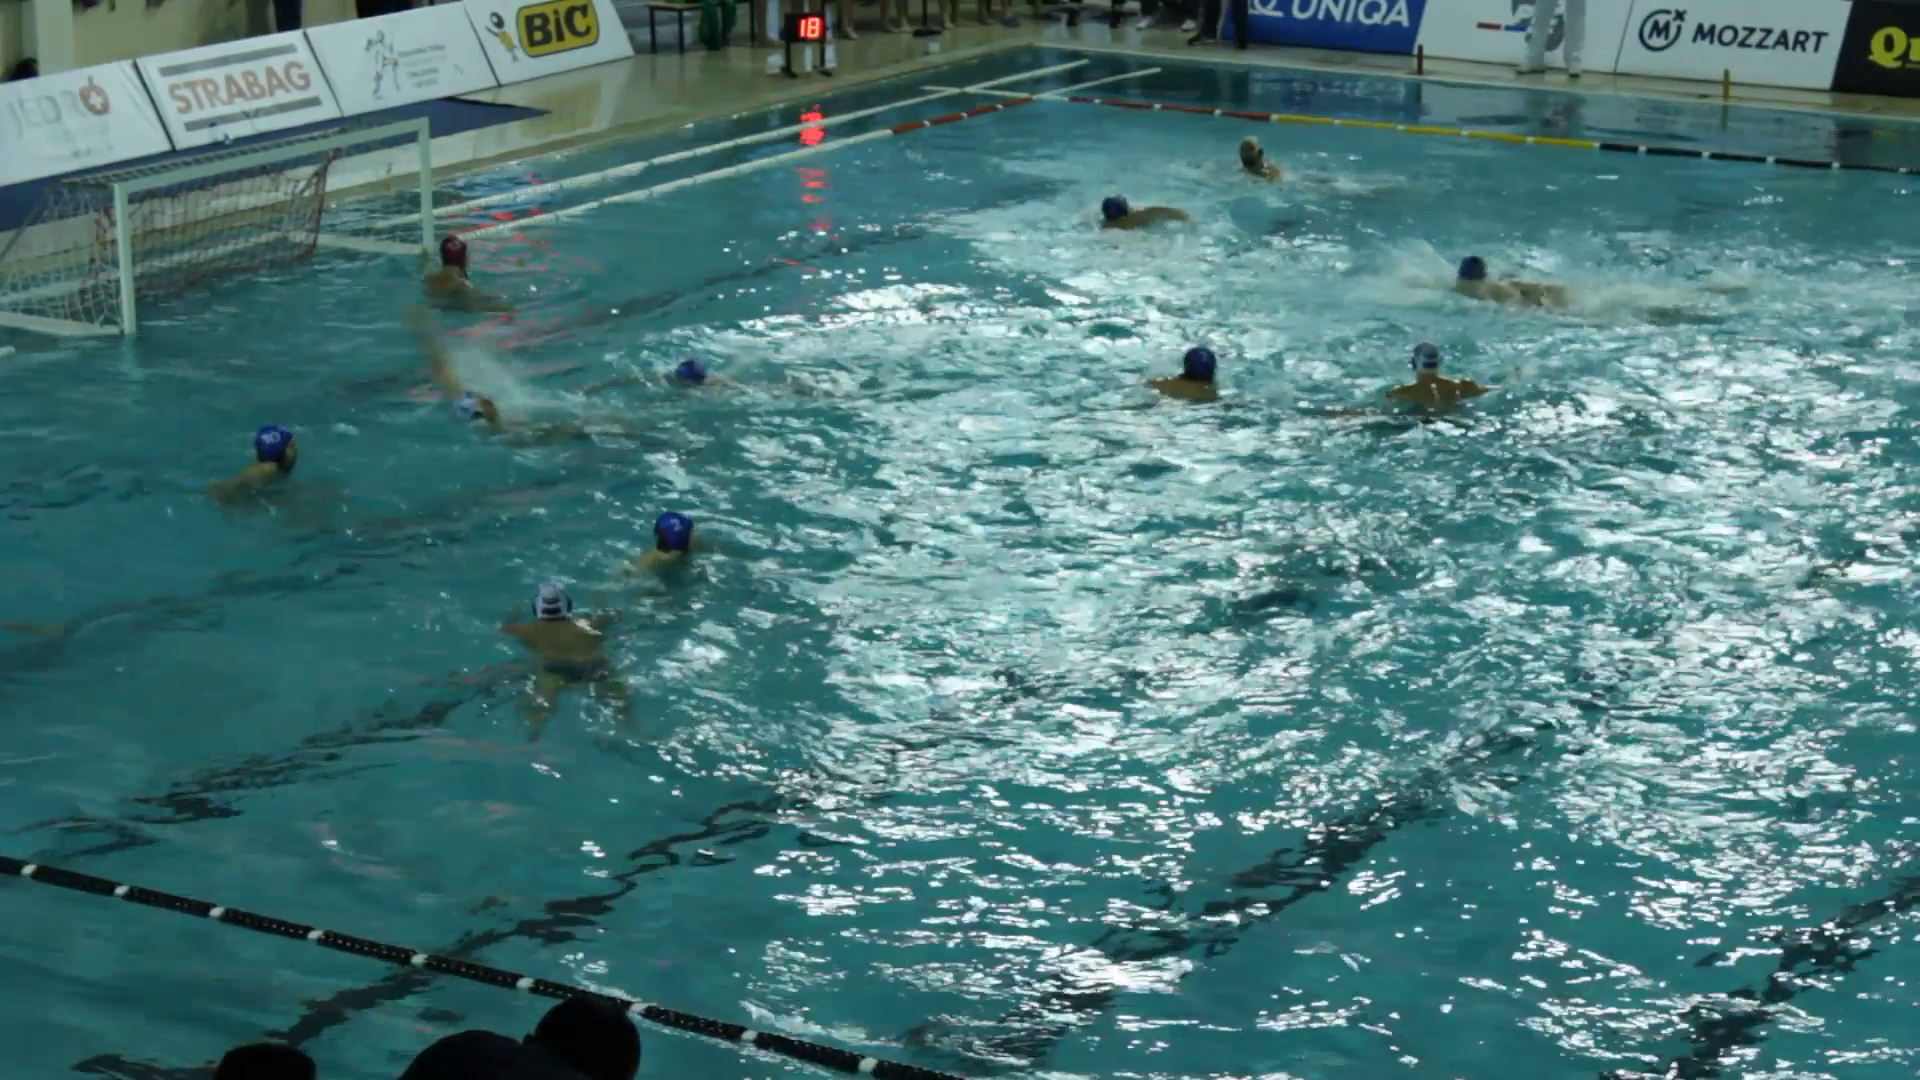 Water Polo Png Hd - Water Polo Png Hd Hdpng.com 1920, Transparent background PNG HD thumbnail